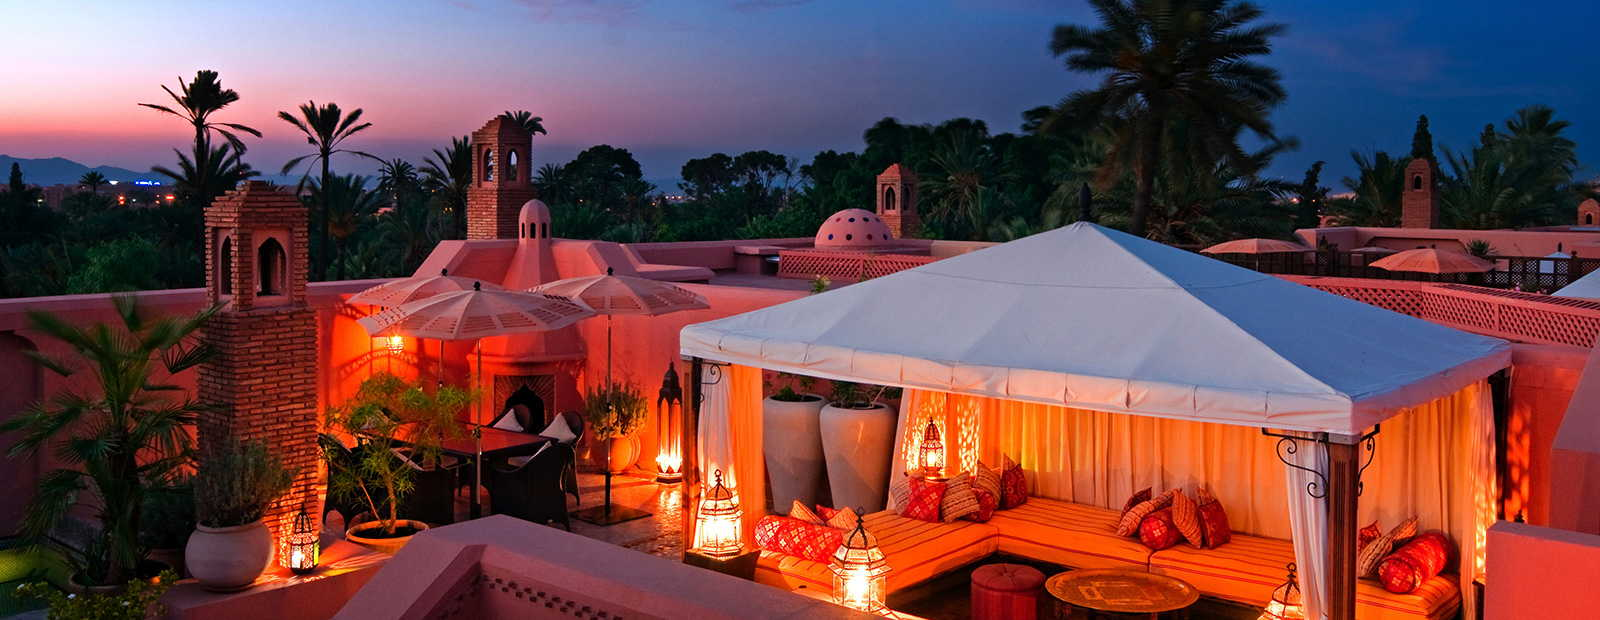 Luxurious hotels in Morocco